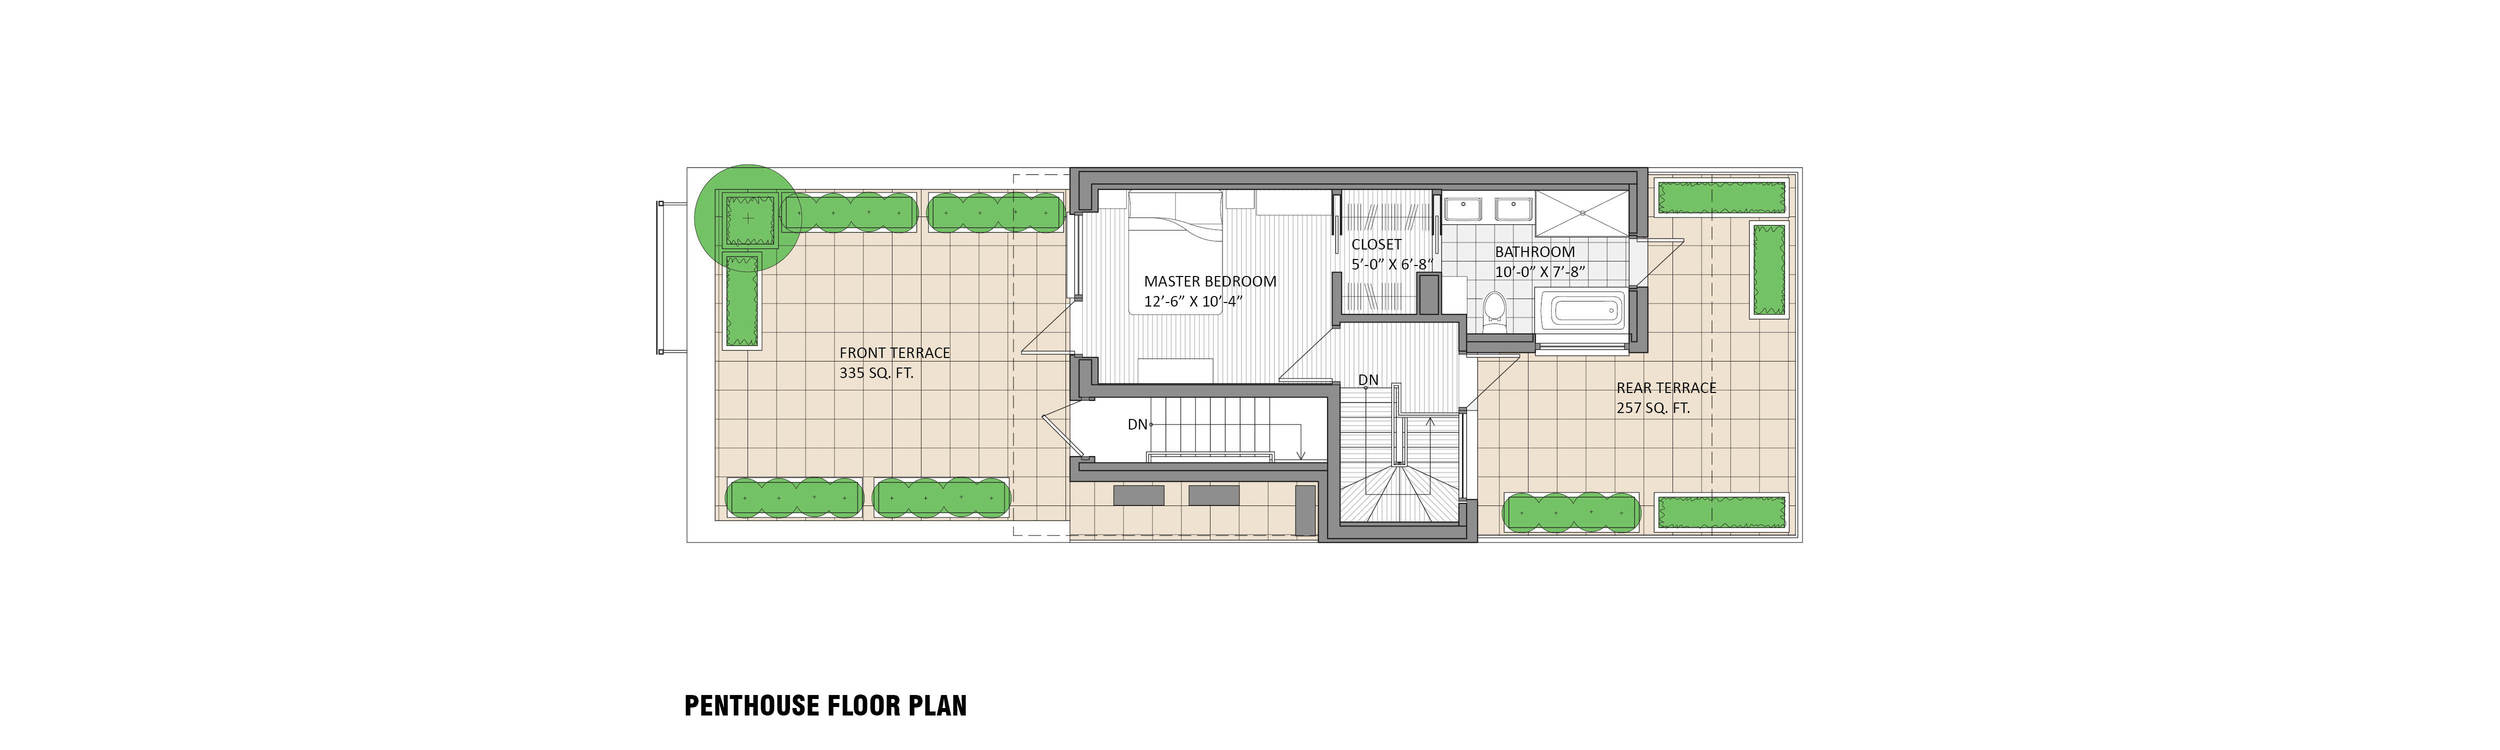 Floor Plan cropped_Website6.jpg